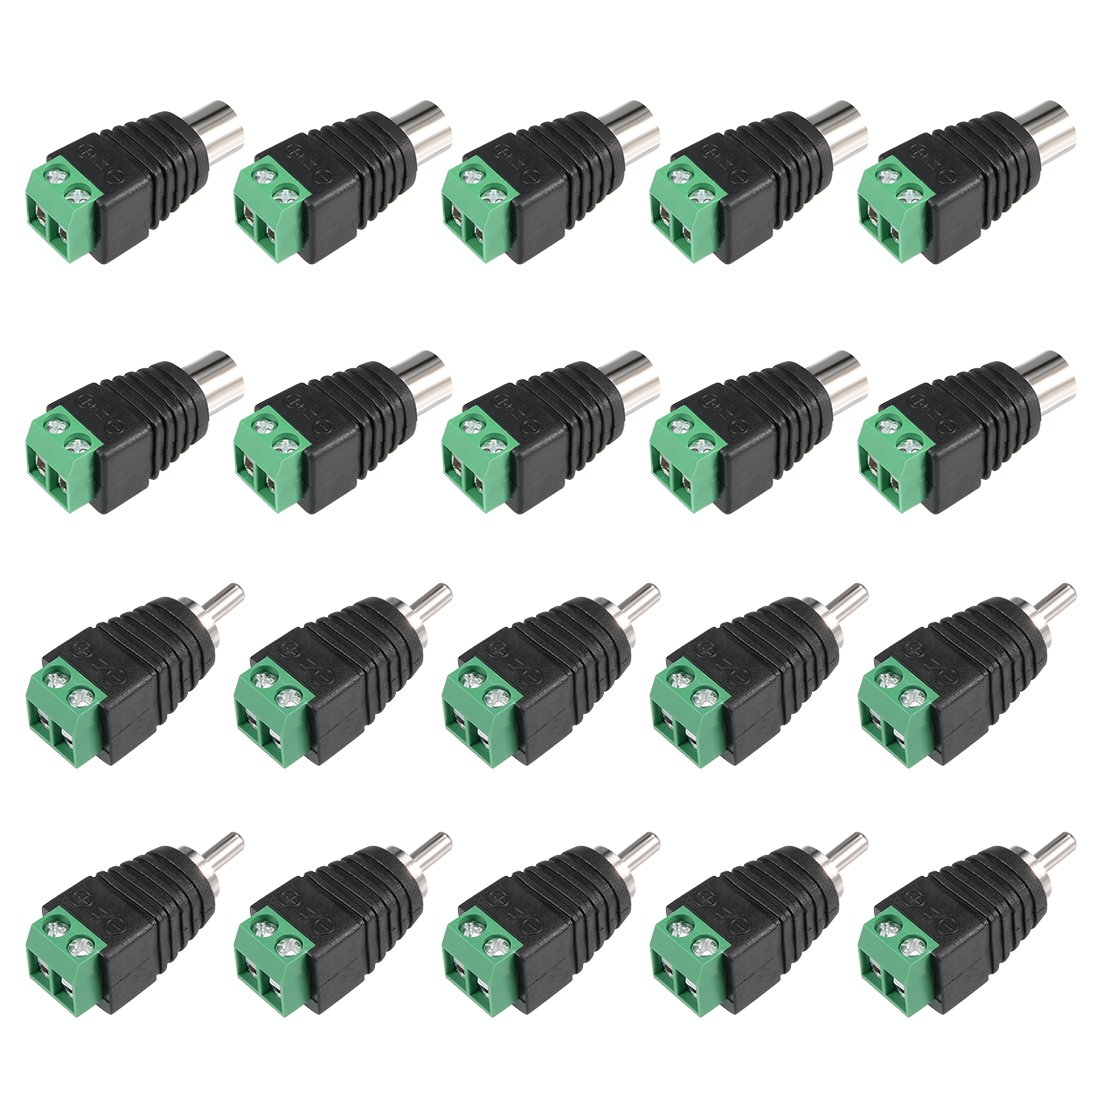 uxcell Coax Cat5 Cat6 to Stereo 3.5mm CCTV Camera Audio Balun Adapter Connector 5 Pcs